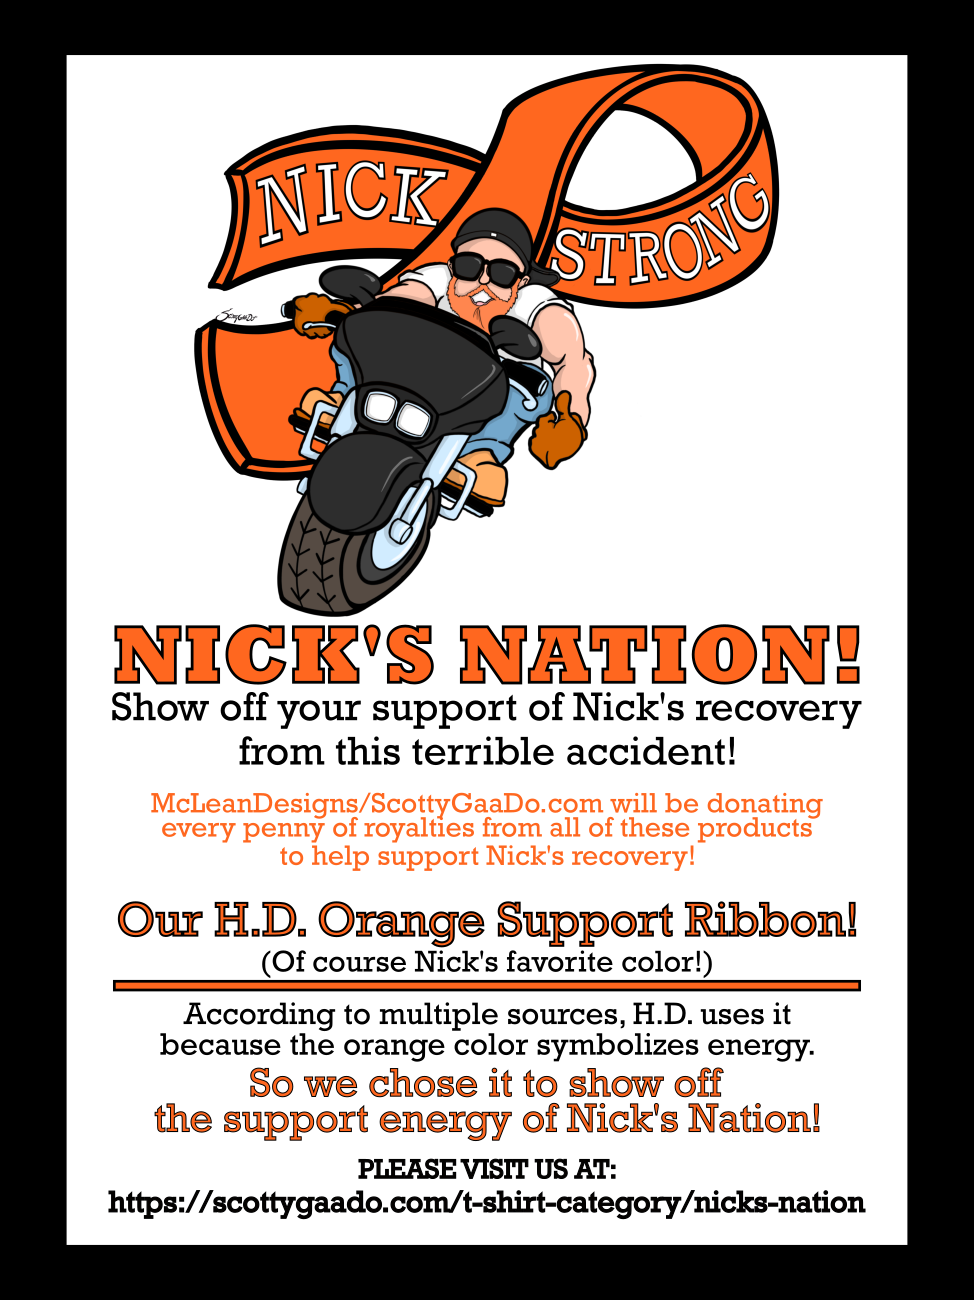 "NICK'S NATION ""NICK STRONG"" Store"